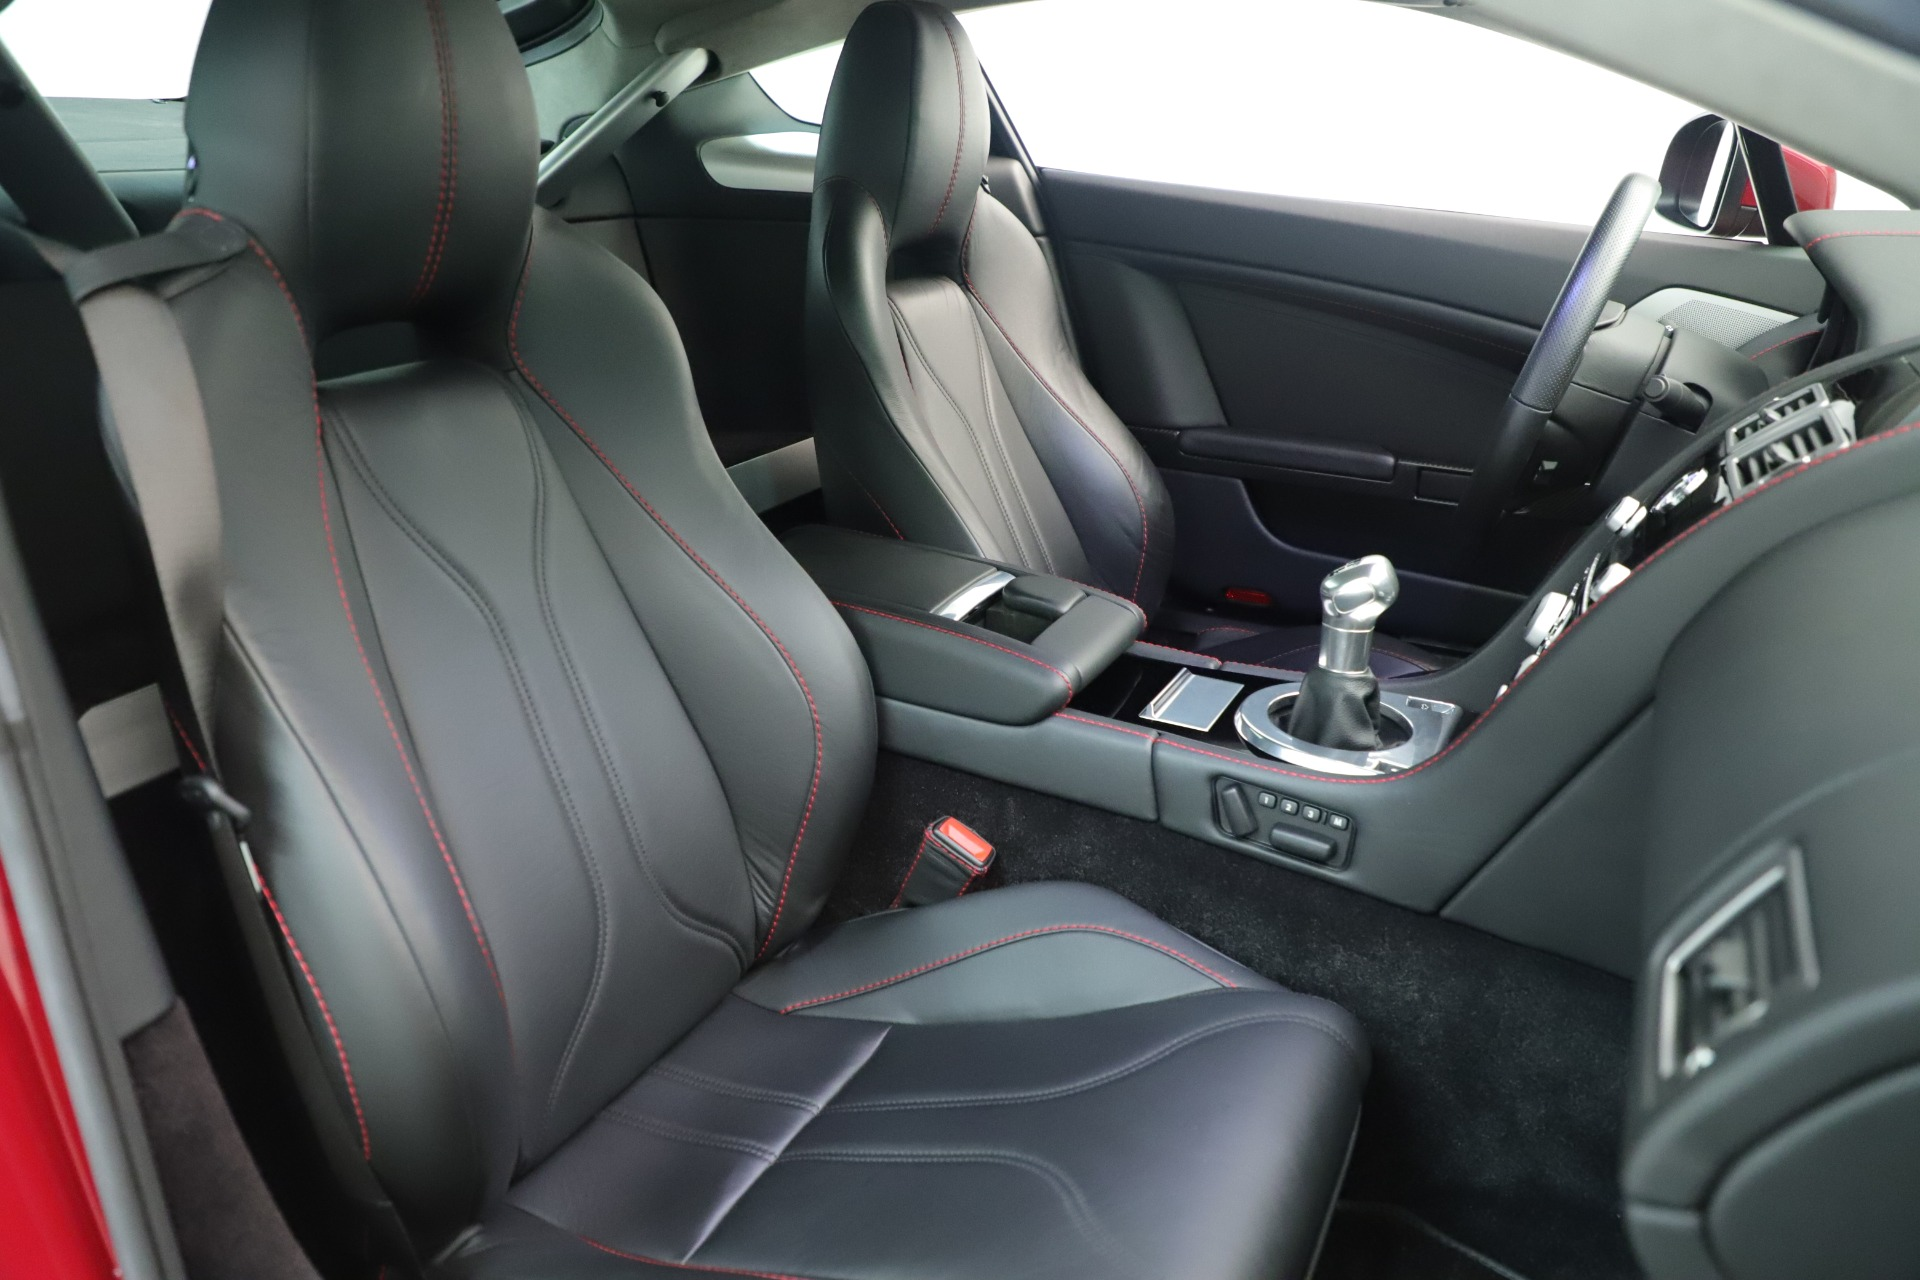 Used 2011 Aston Martin V12 Vantage Coupe For Sale In Greenwich, CT 3395_p31